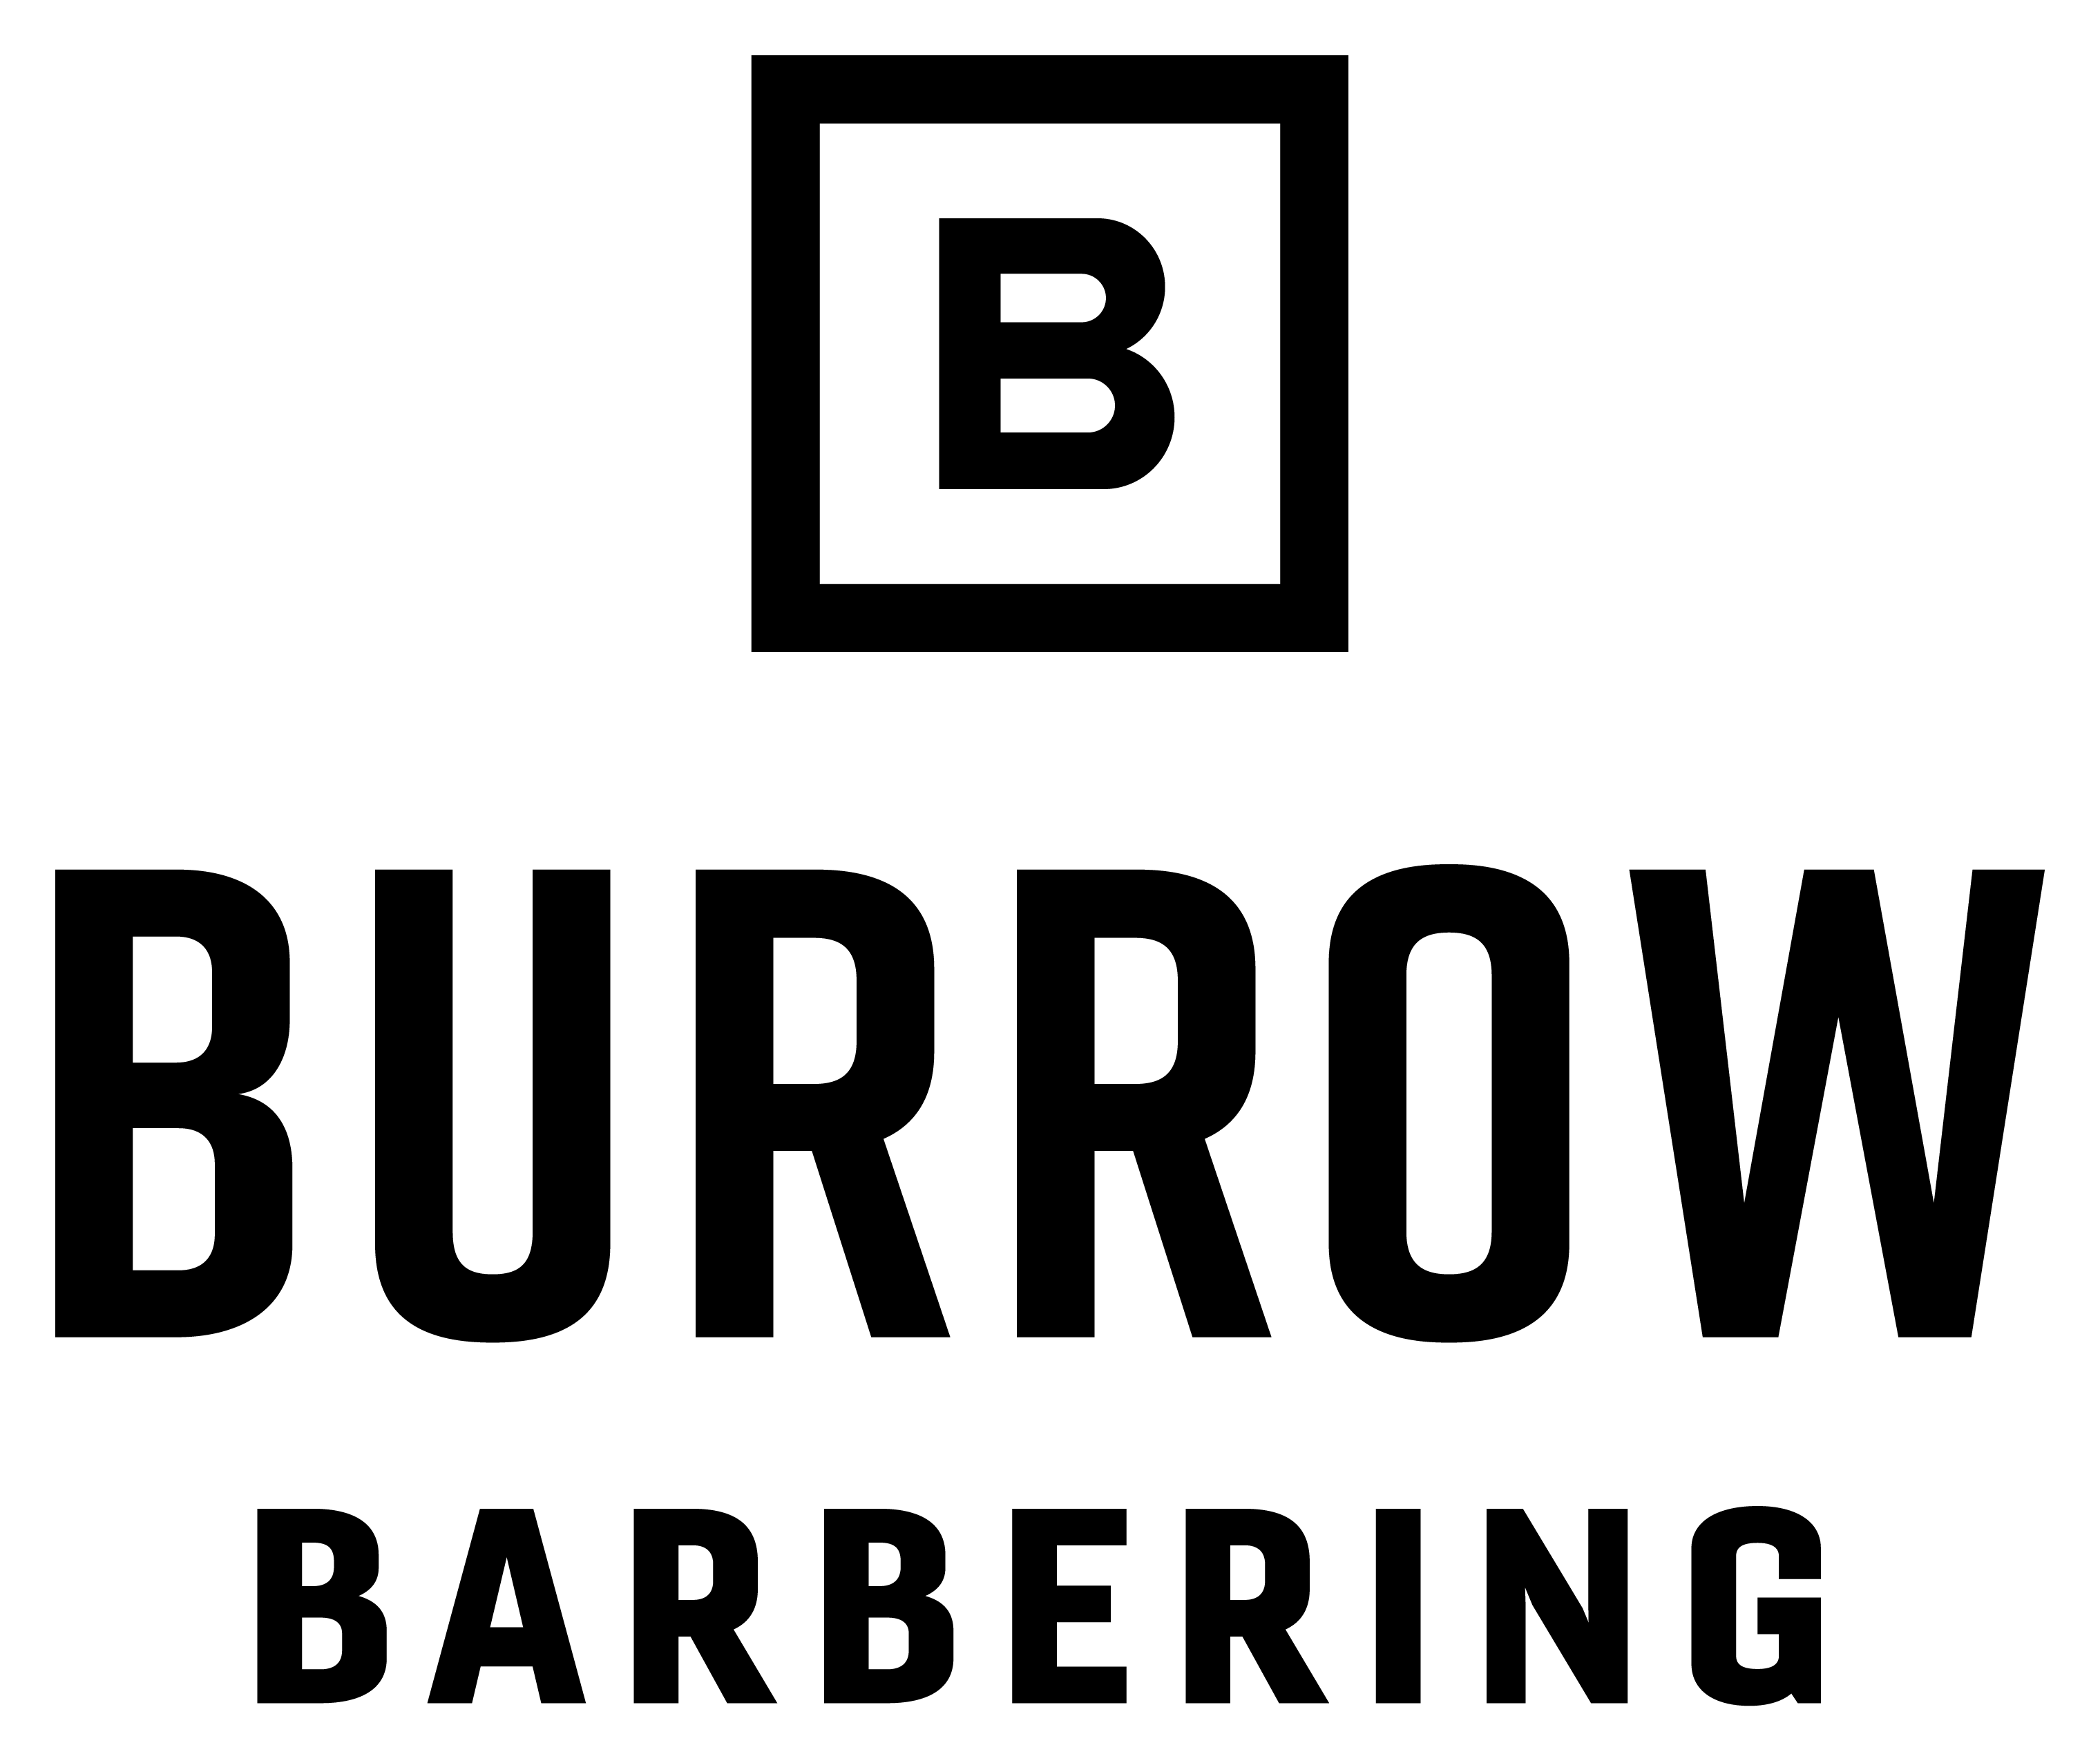 secondary-tall-black-outline